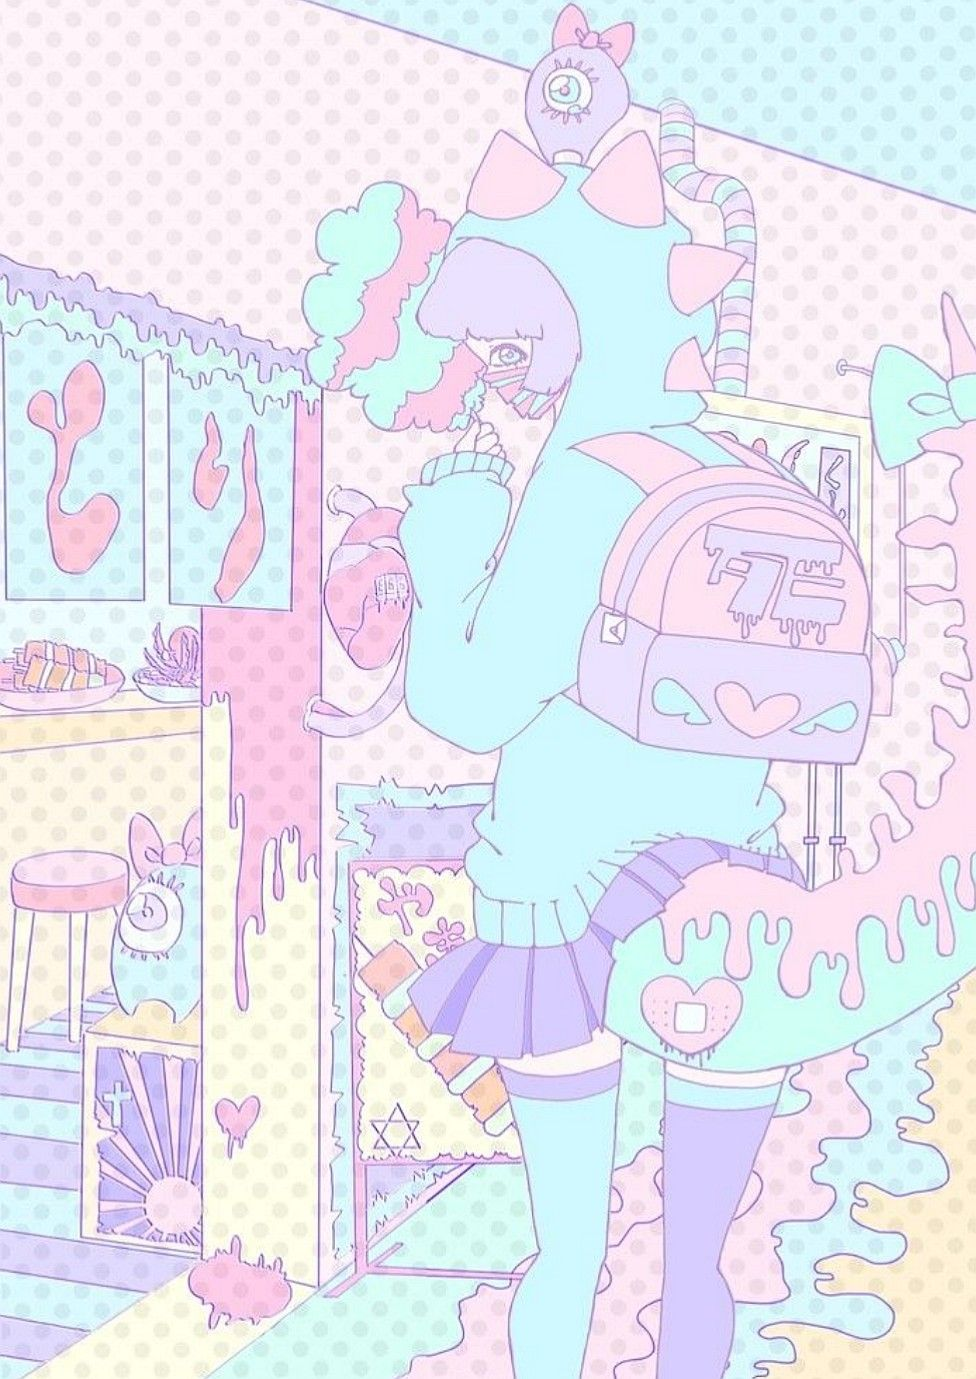 Hd wallpapers and background images. 25 Solid Anime Pastel Wallpaper Pics Anime Wallpapers